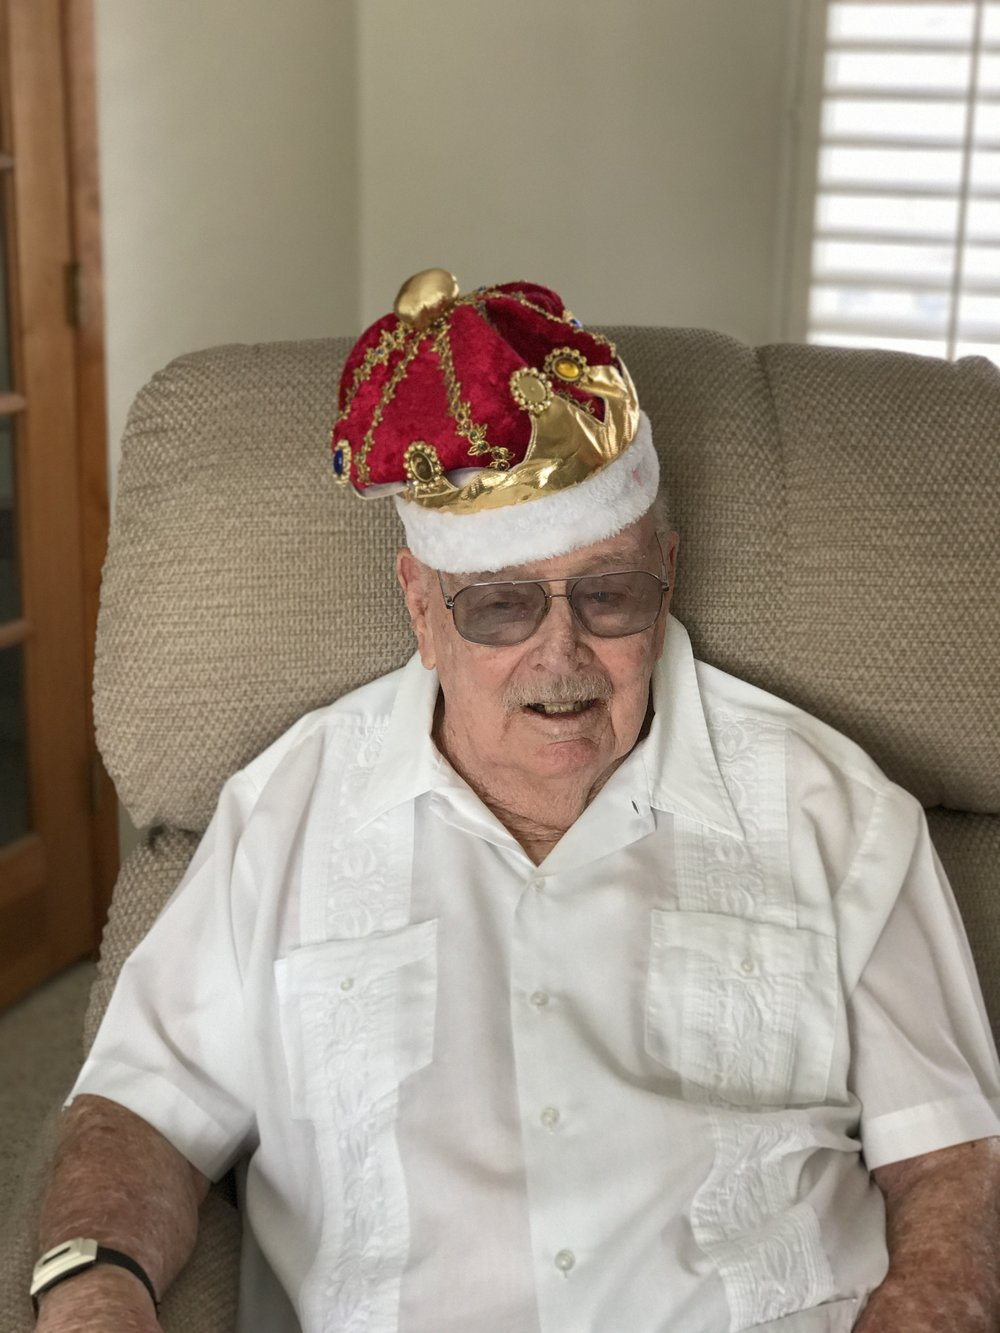 My Dad wearing his 89th birthday party  crown.